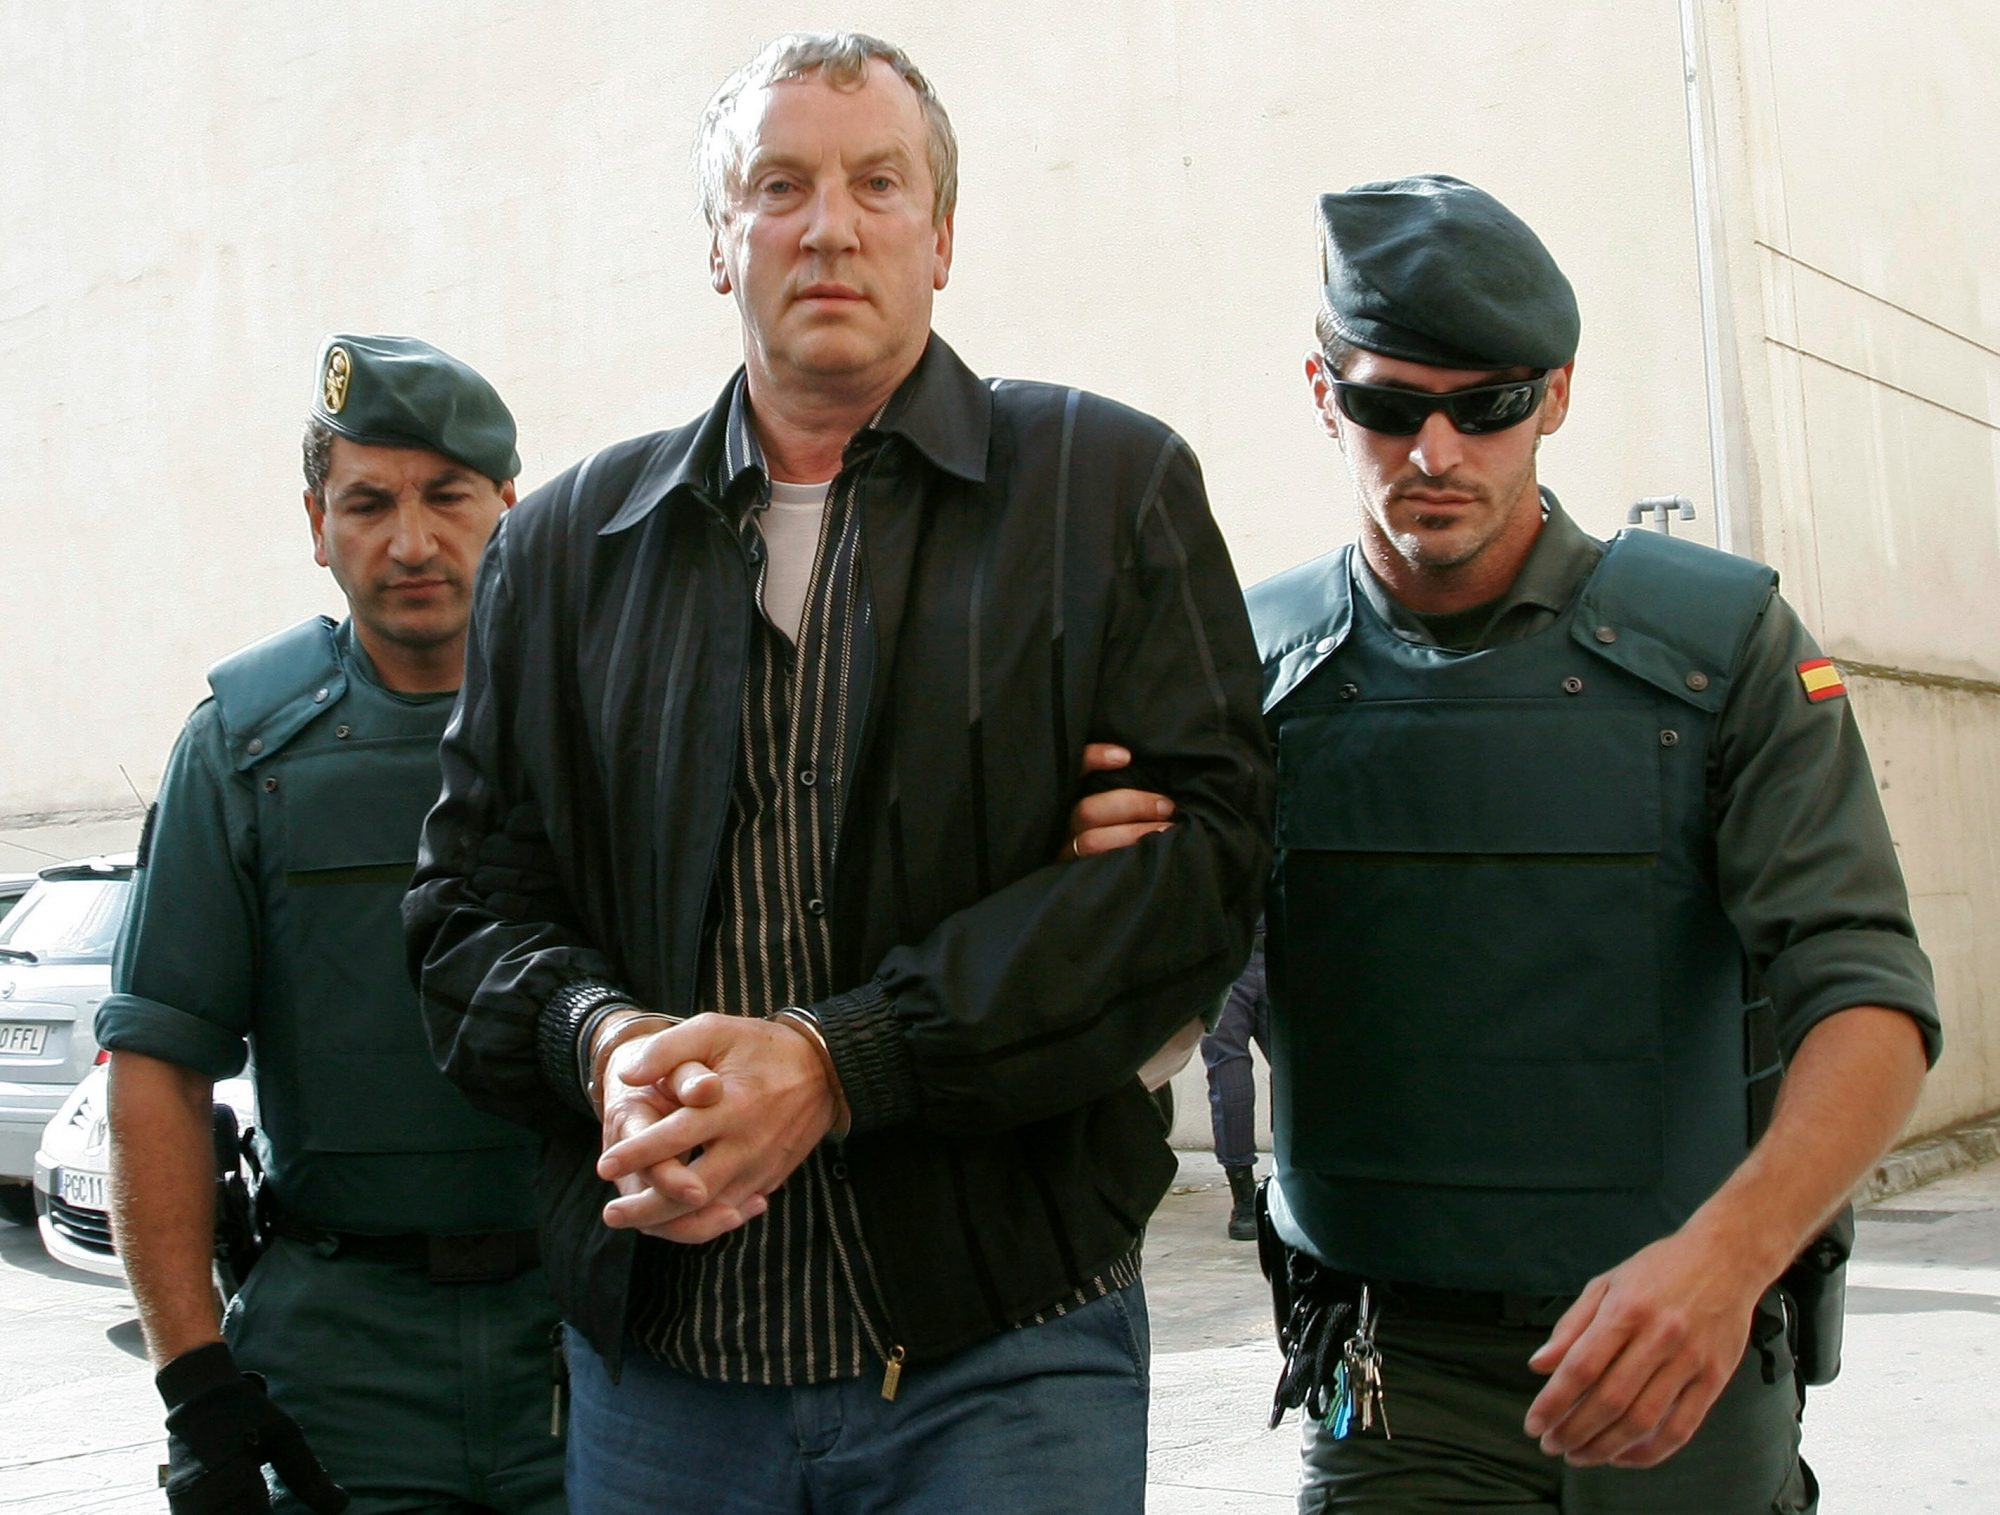 Police officers accompany Gennady Petrov, a mob boss linked to top Russian officials, after his arrest on the island of Mallorca in 2008. Photo credit: Dani Cardona/Reuters